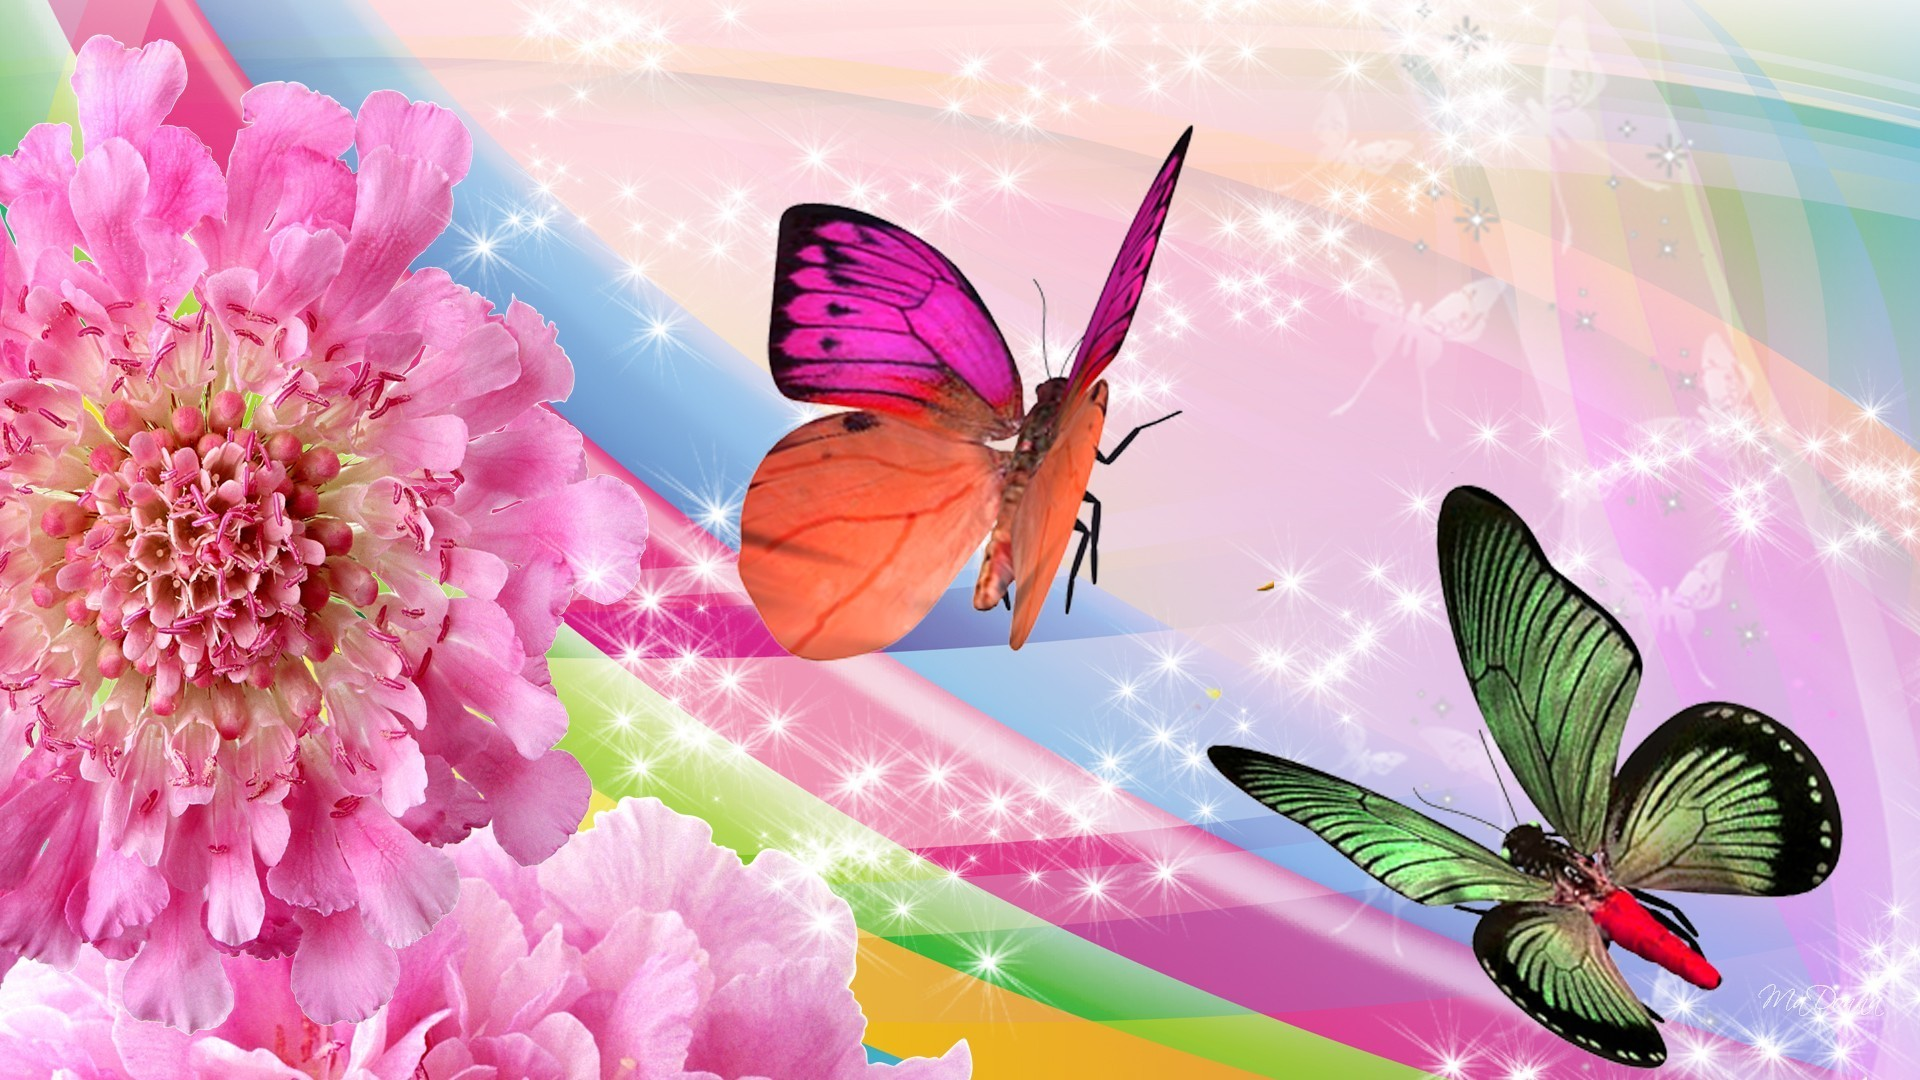 Butterflies Tag – Rainbow Flowers Butterflies Butterfly Firefox Persona Sparkles  Pink Bright Stars Mobile Wallpapers Hd